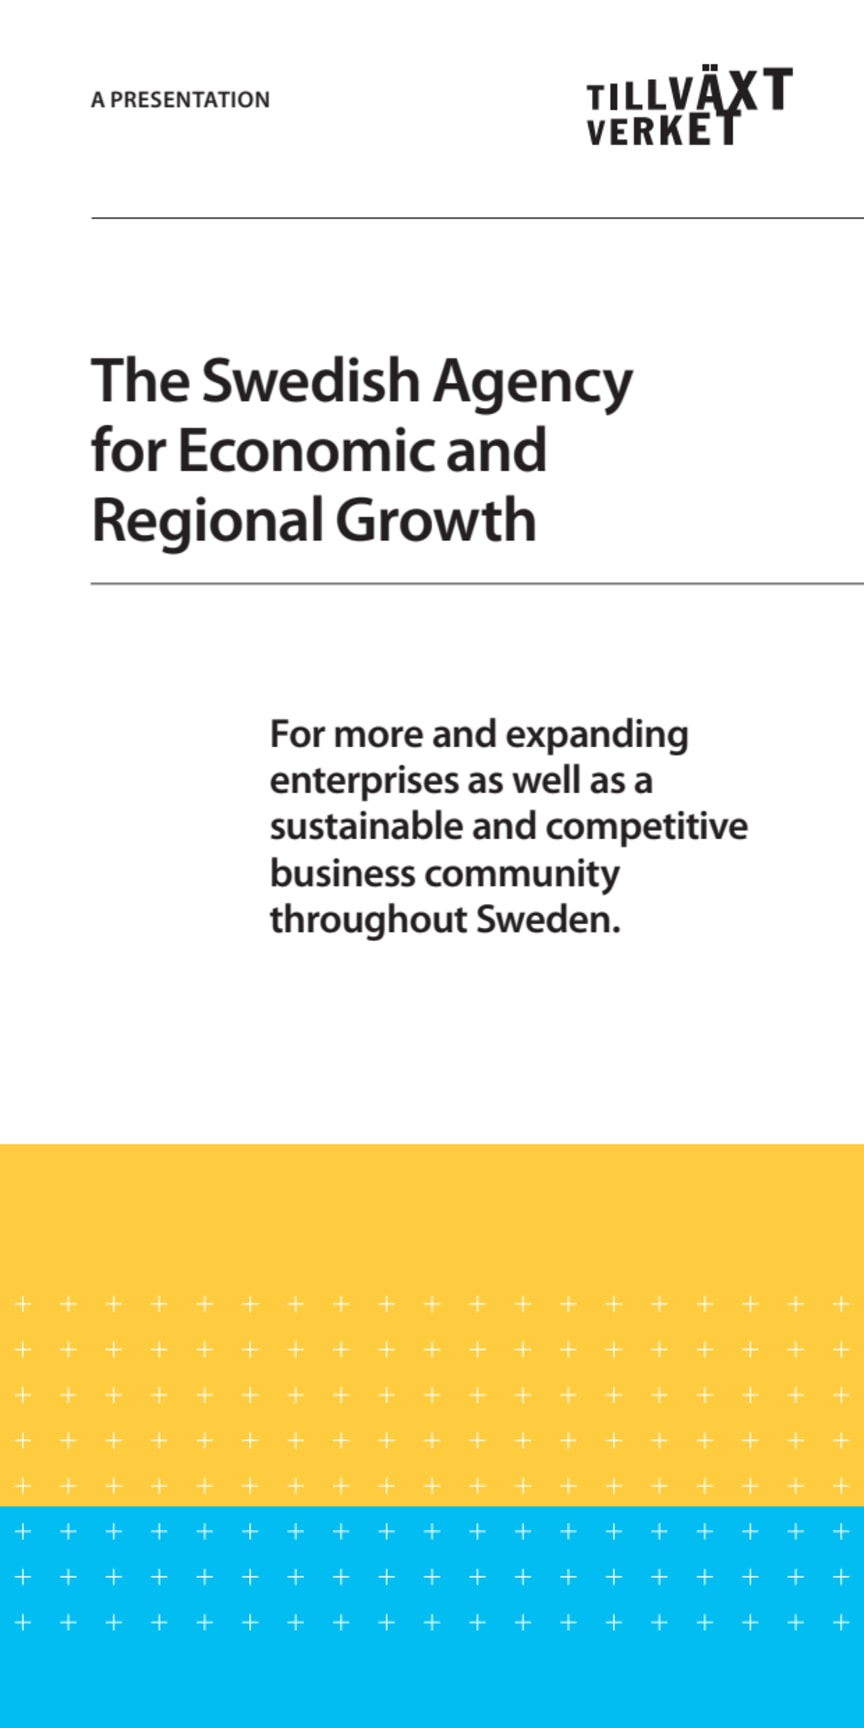 The Swedish Agency for Economic and Regional Growth